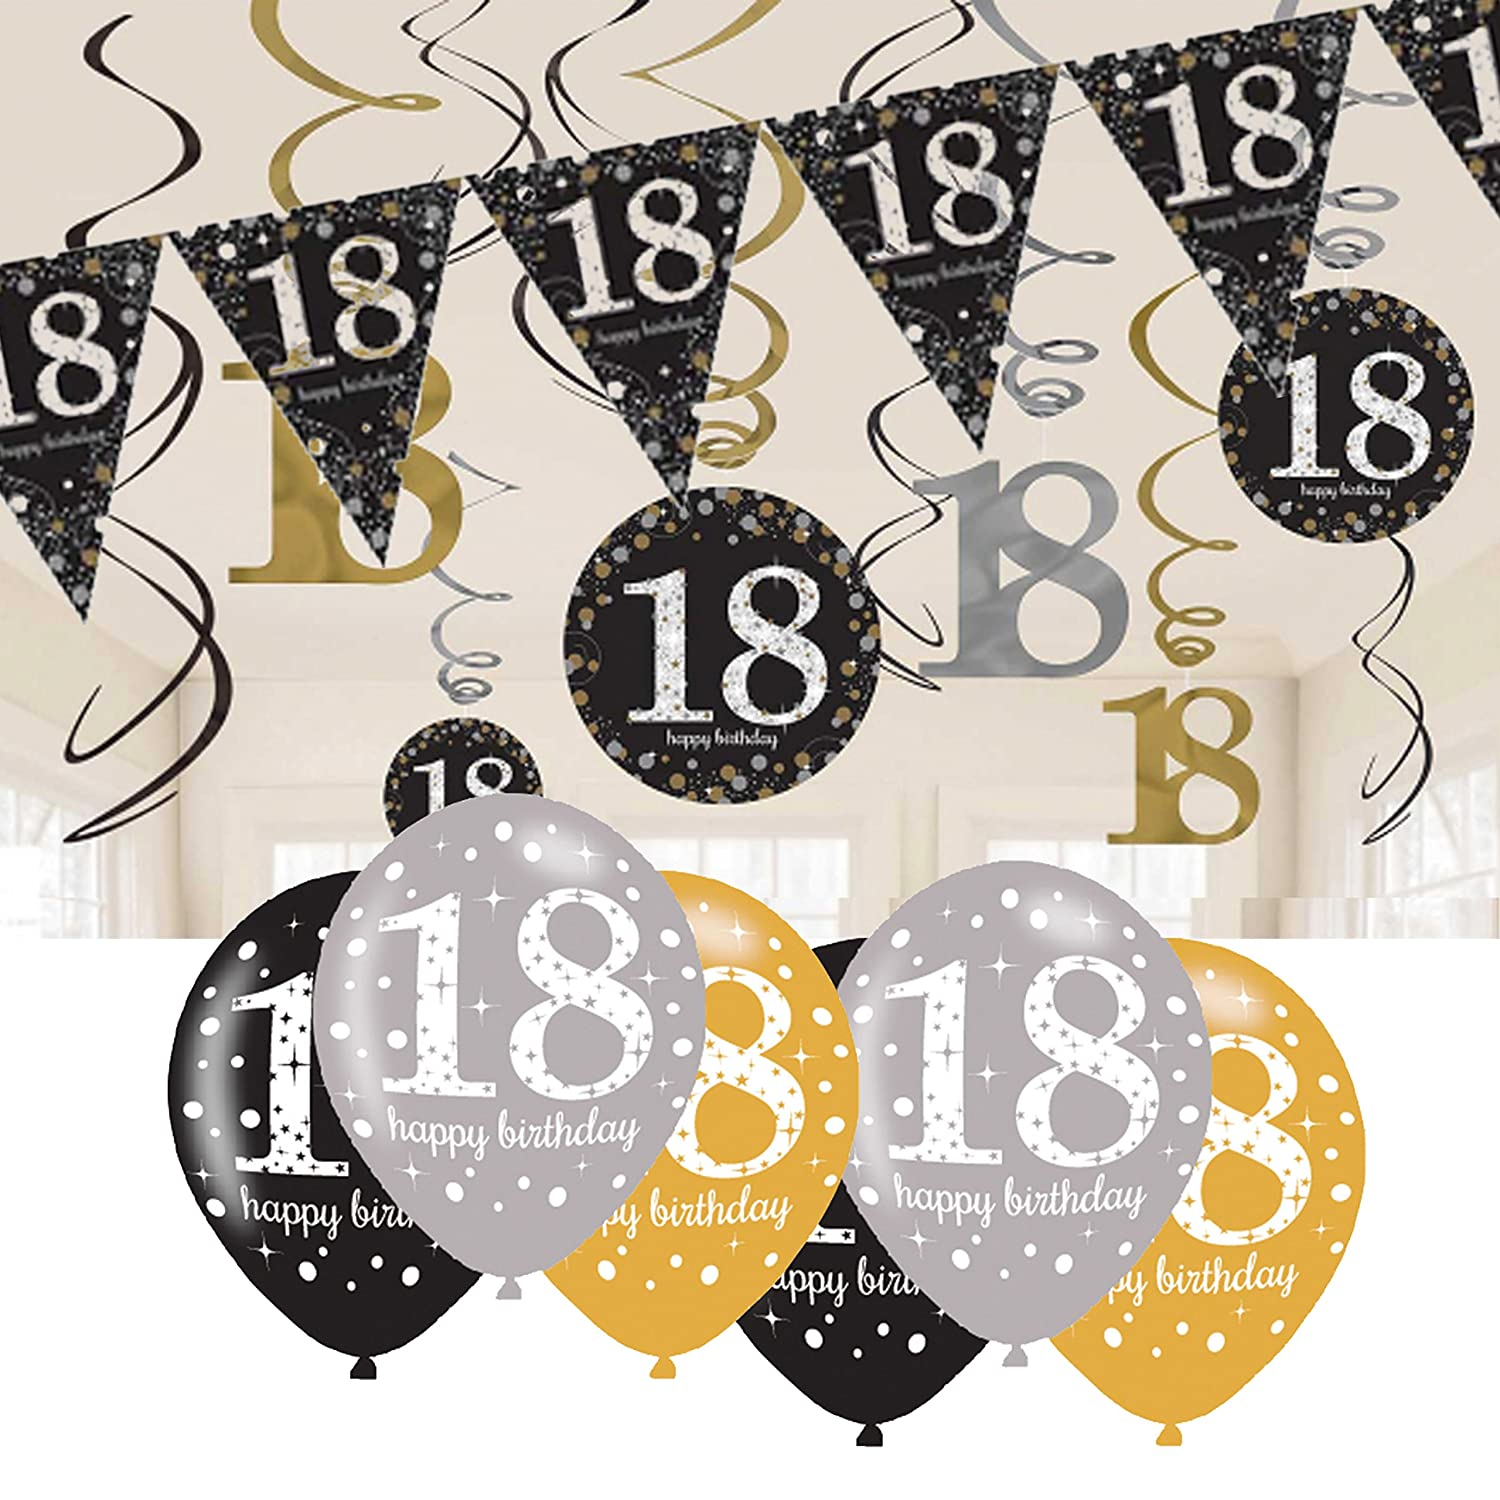 18th Birthday Decorations Black And Gold Bunting Balloons Hanging Amazoncouk Toys Games